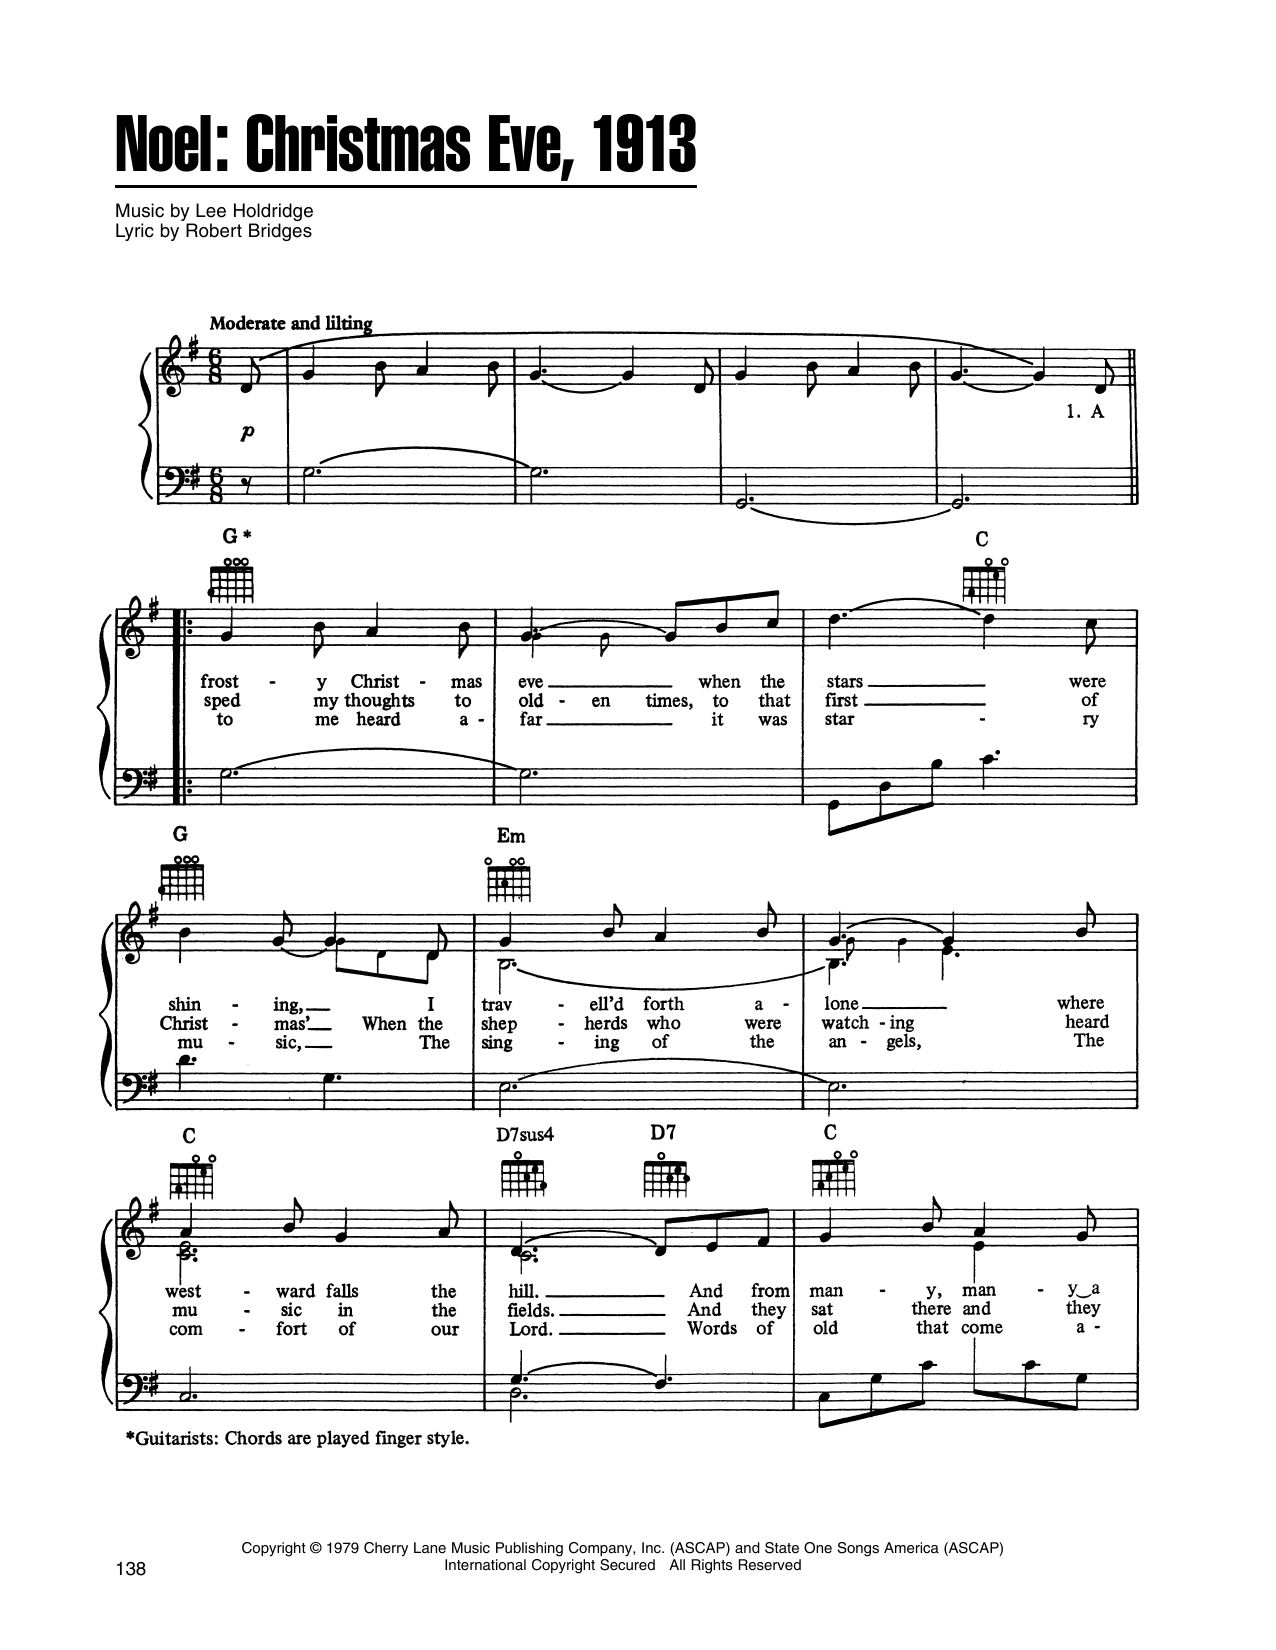 John Denver and The Muppets Noel: Christmas Eve, 1913 (from A Christmas Together) sheet music notes printable PDF score